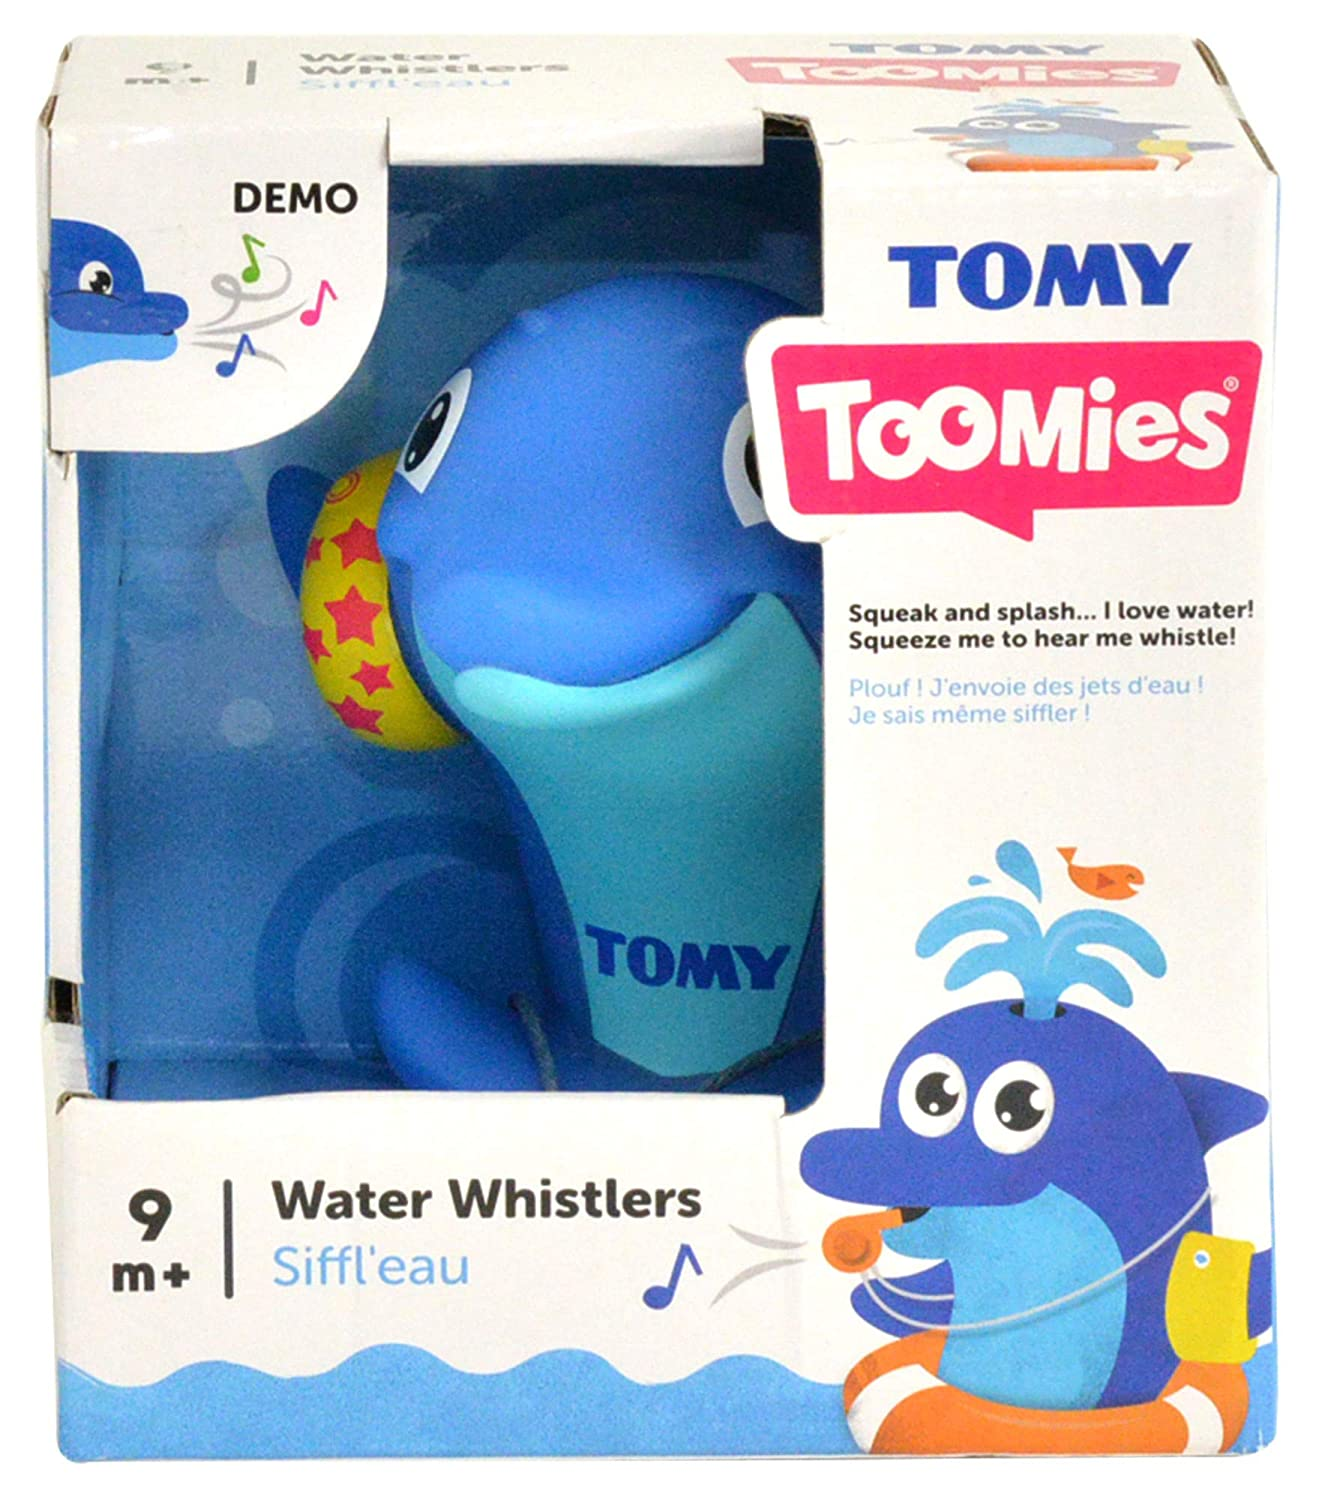 TOMY Toomies Water Whistler Dolphin  Musical Bath Toy  Suitable From 9 Months T6596 Activity & Entertainment